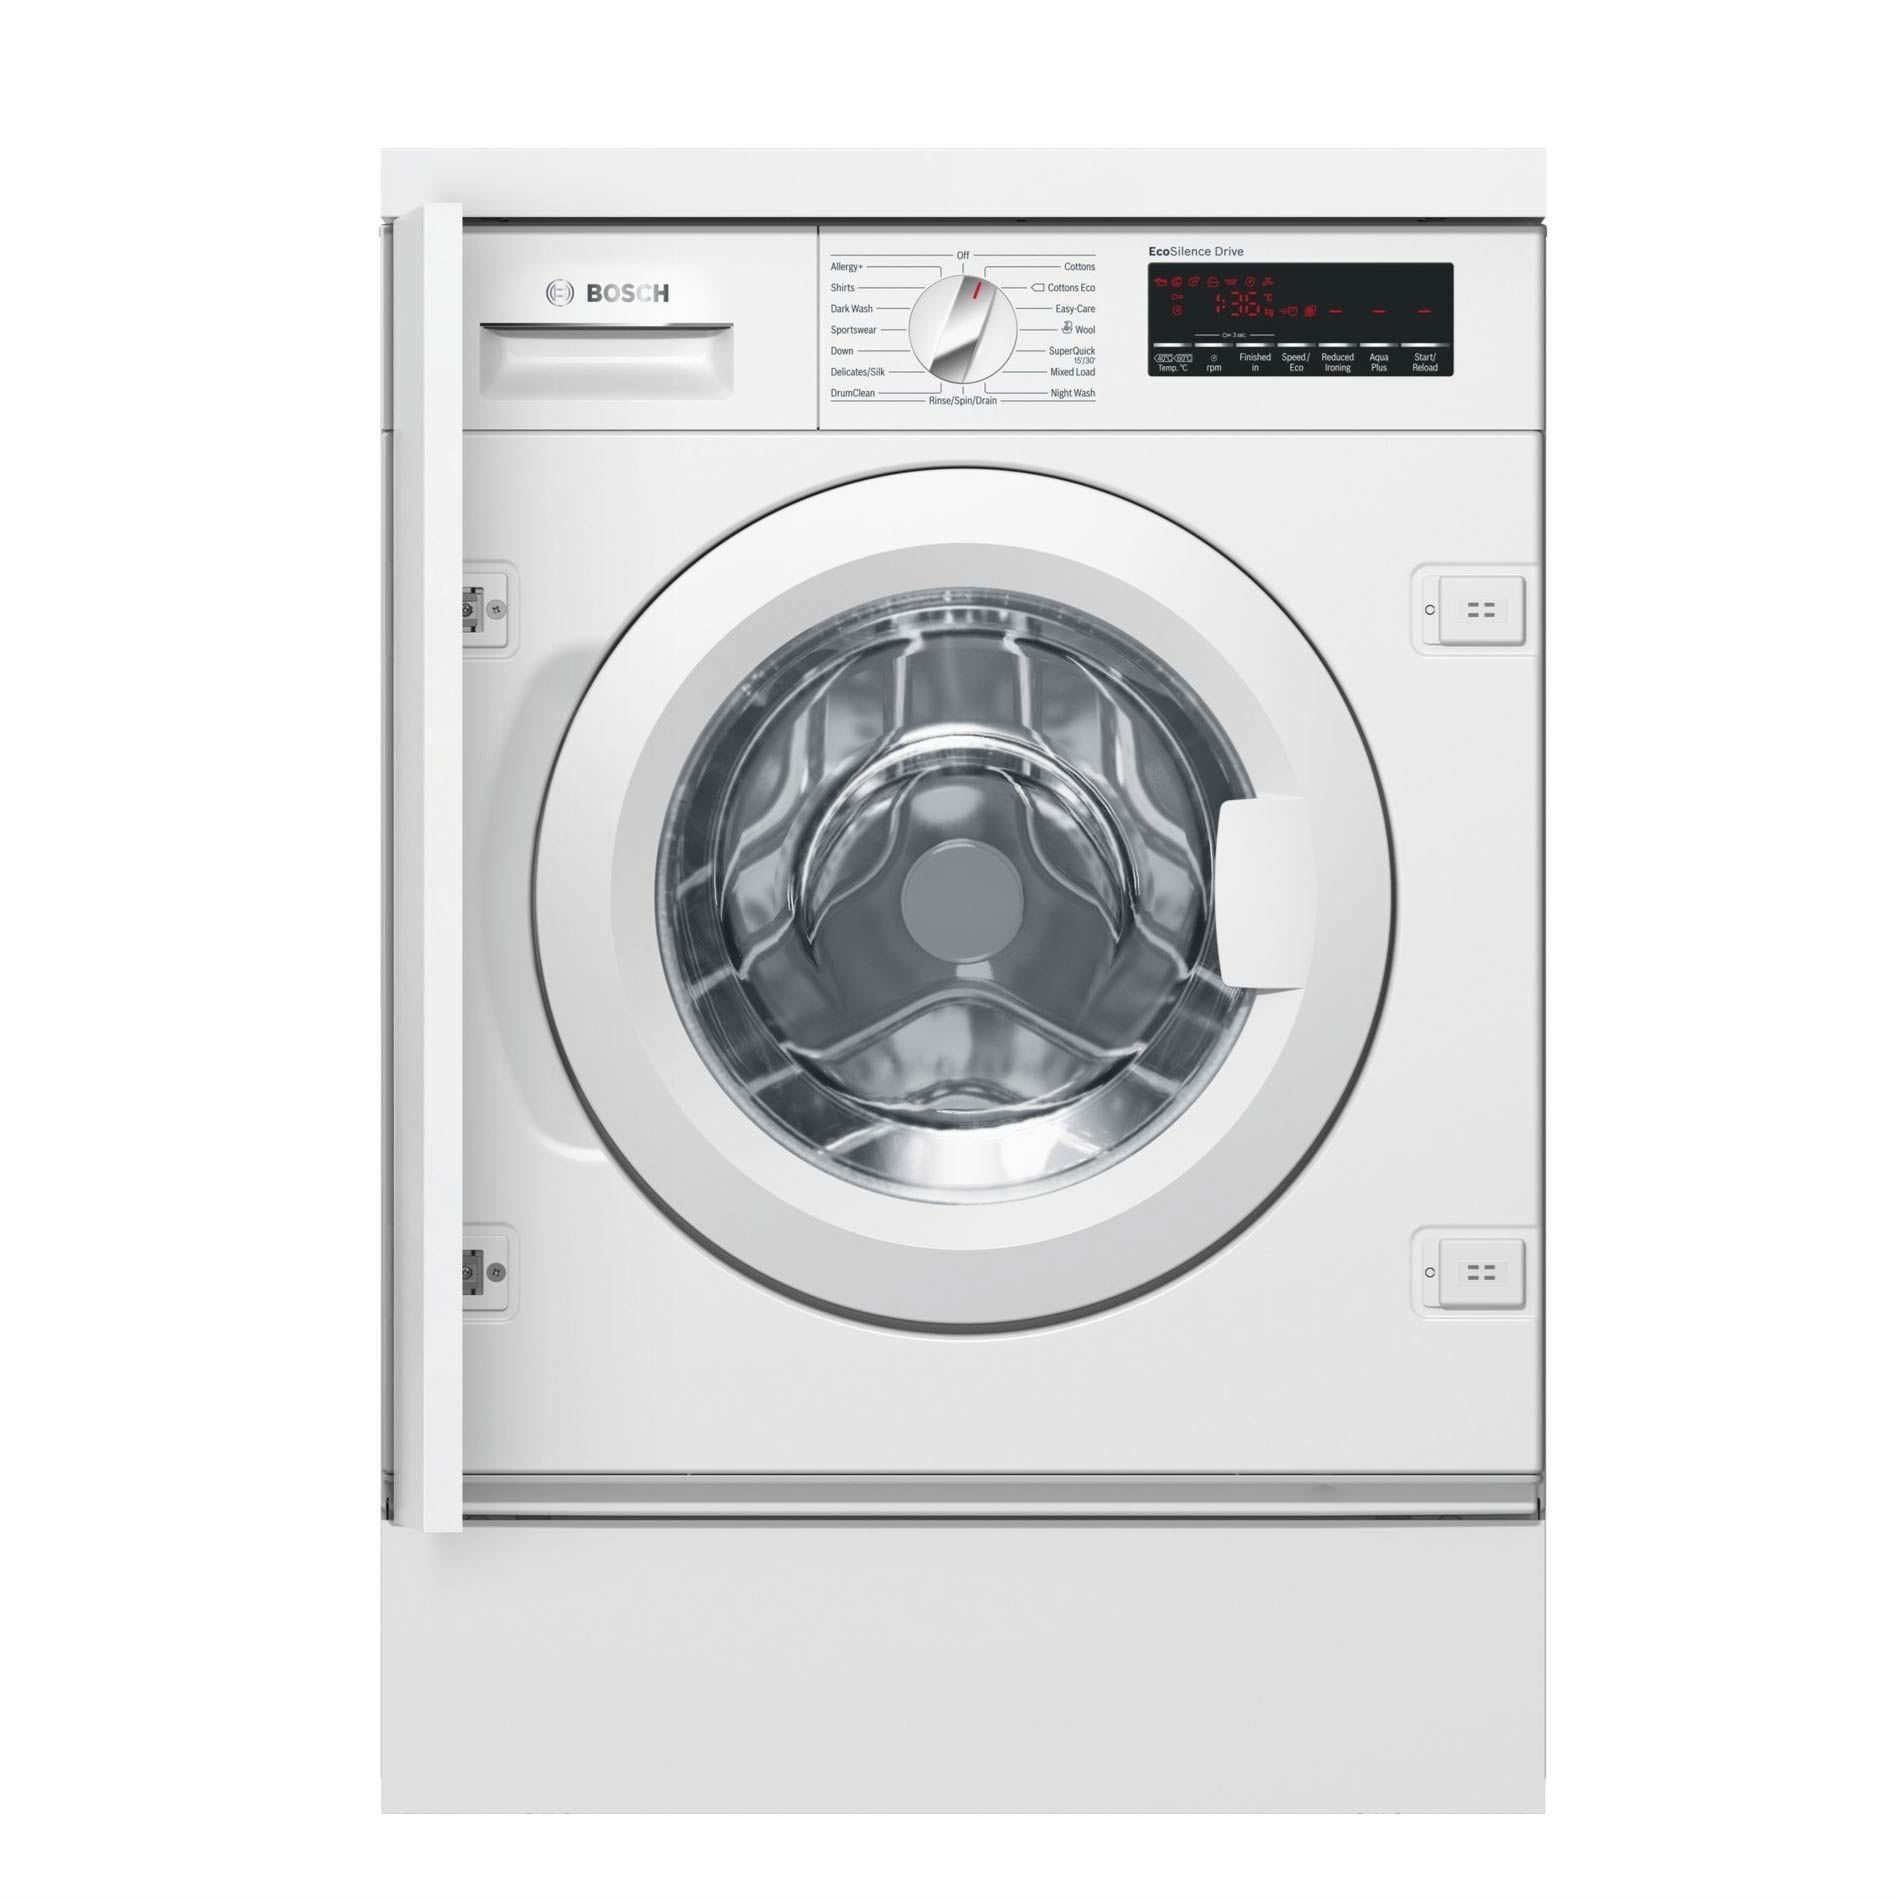 bosch wiw28500gb fully integrated automatic washing machine appliance source. Black Bedroom Furniture Sets. Home Design Ideas